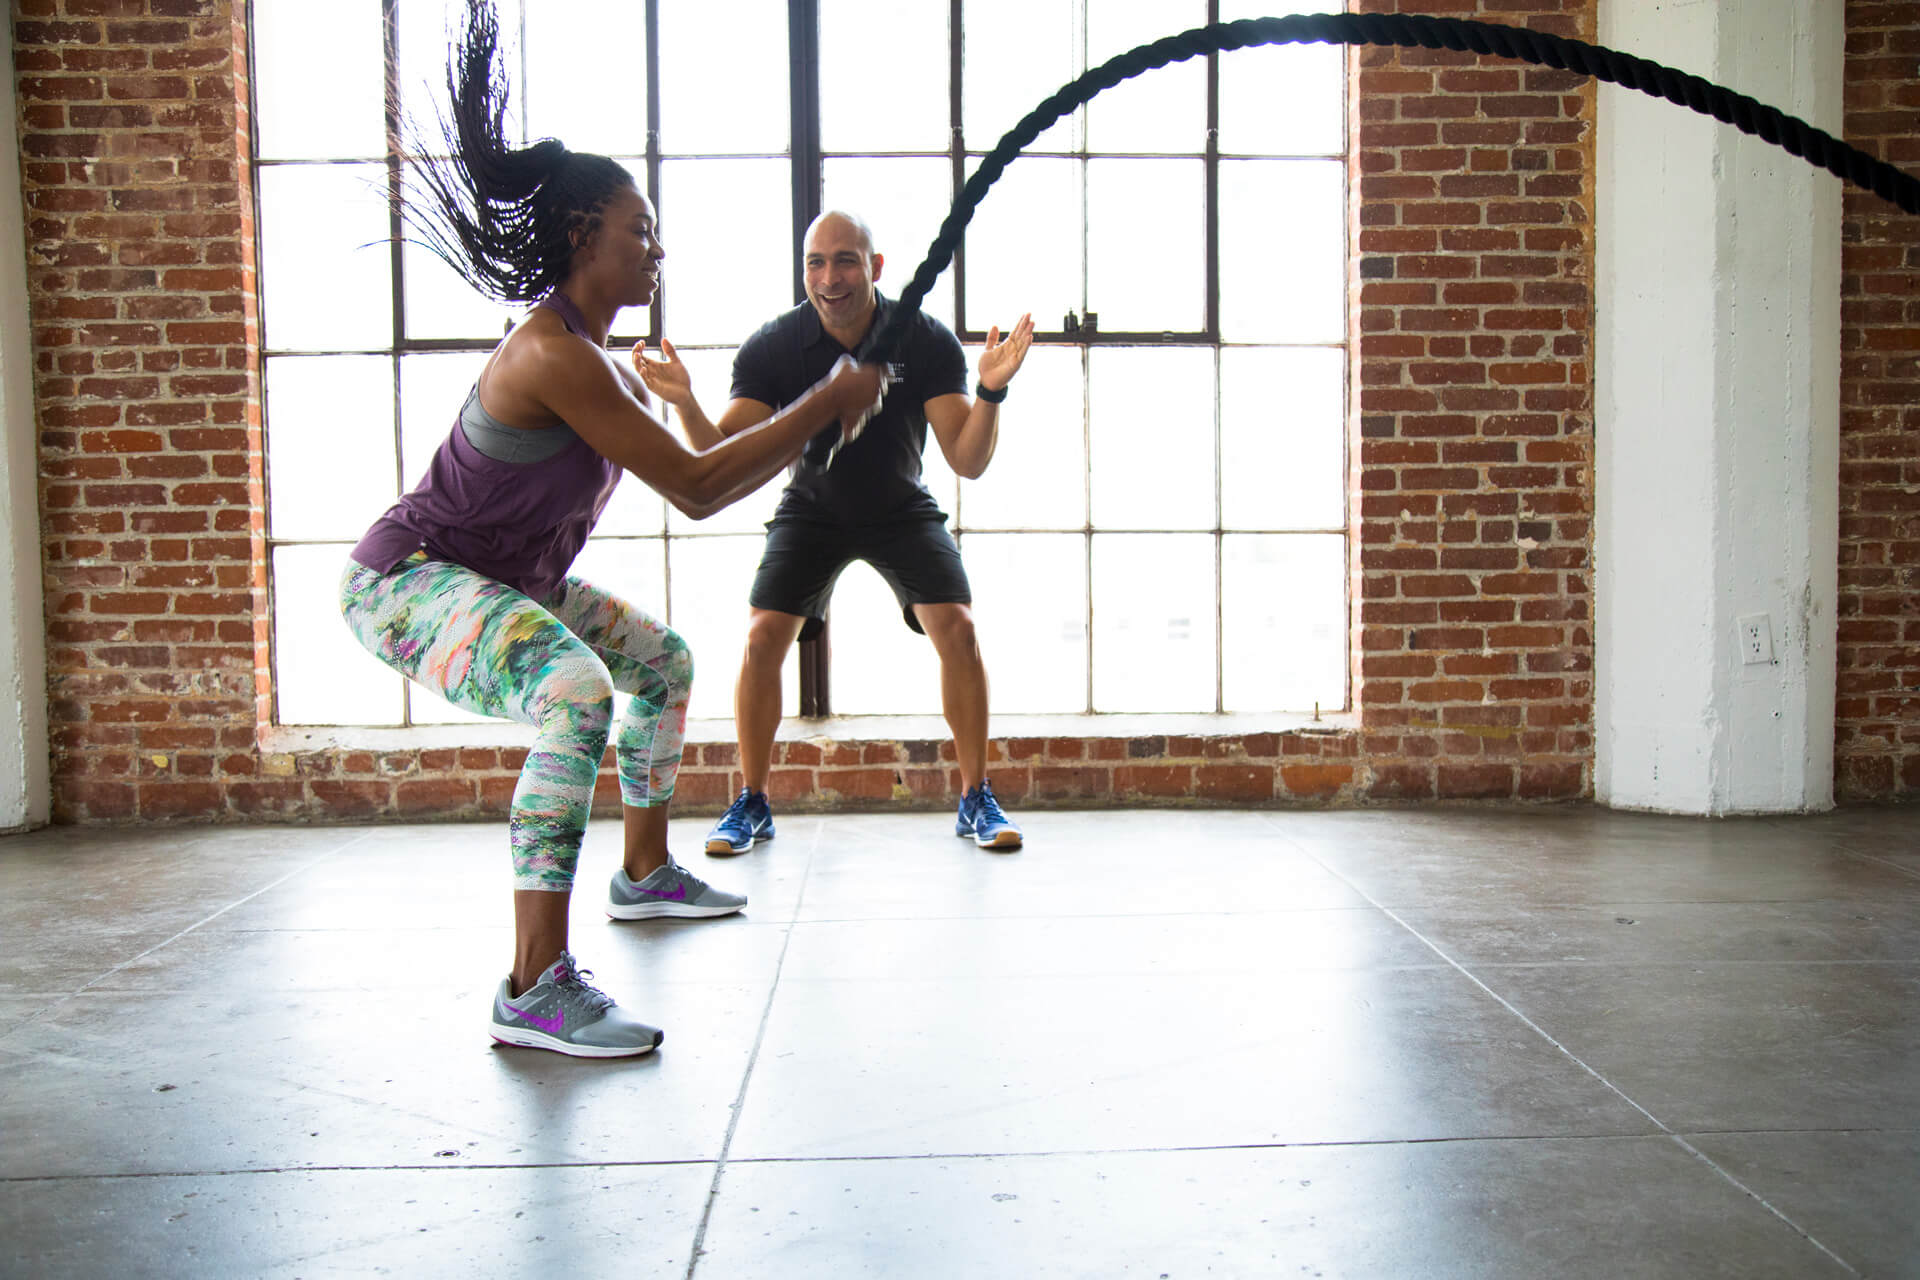 Personal Trainer Encourages Woman Using Battle Ropes